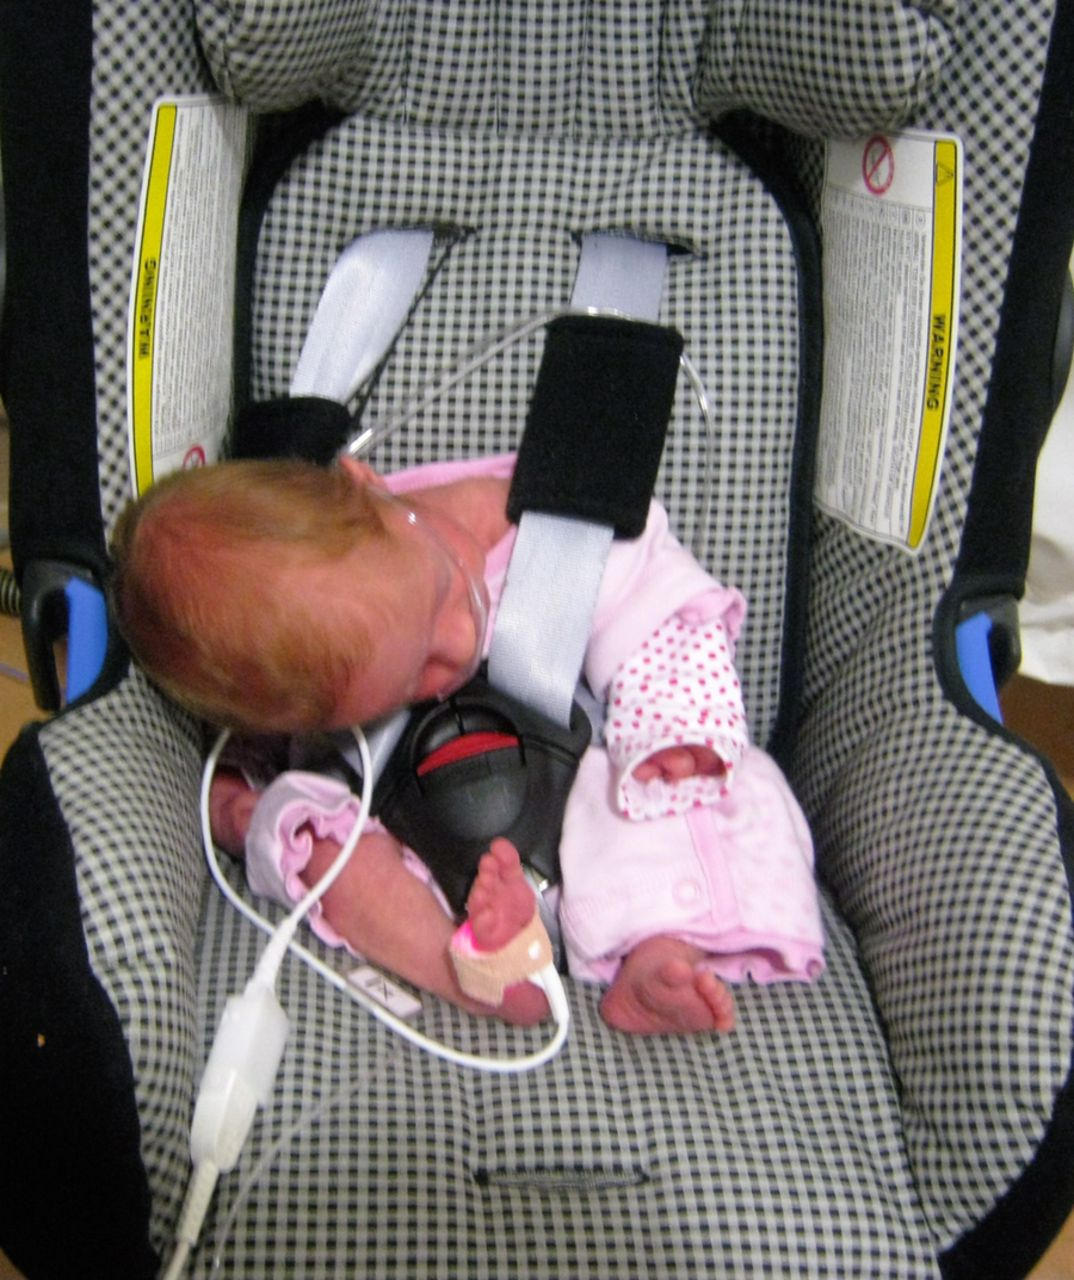 Baby Car Seat Test Is The Infant Car Seat Challenge Useful A Pilot Study In A